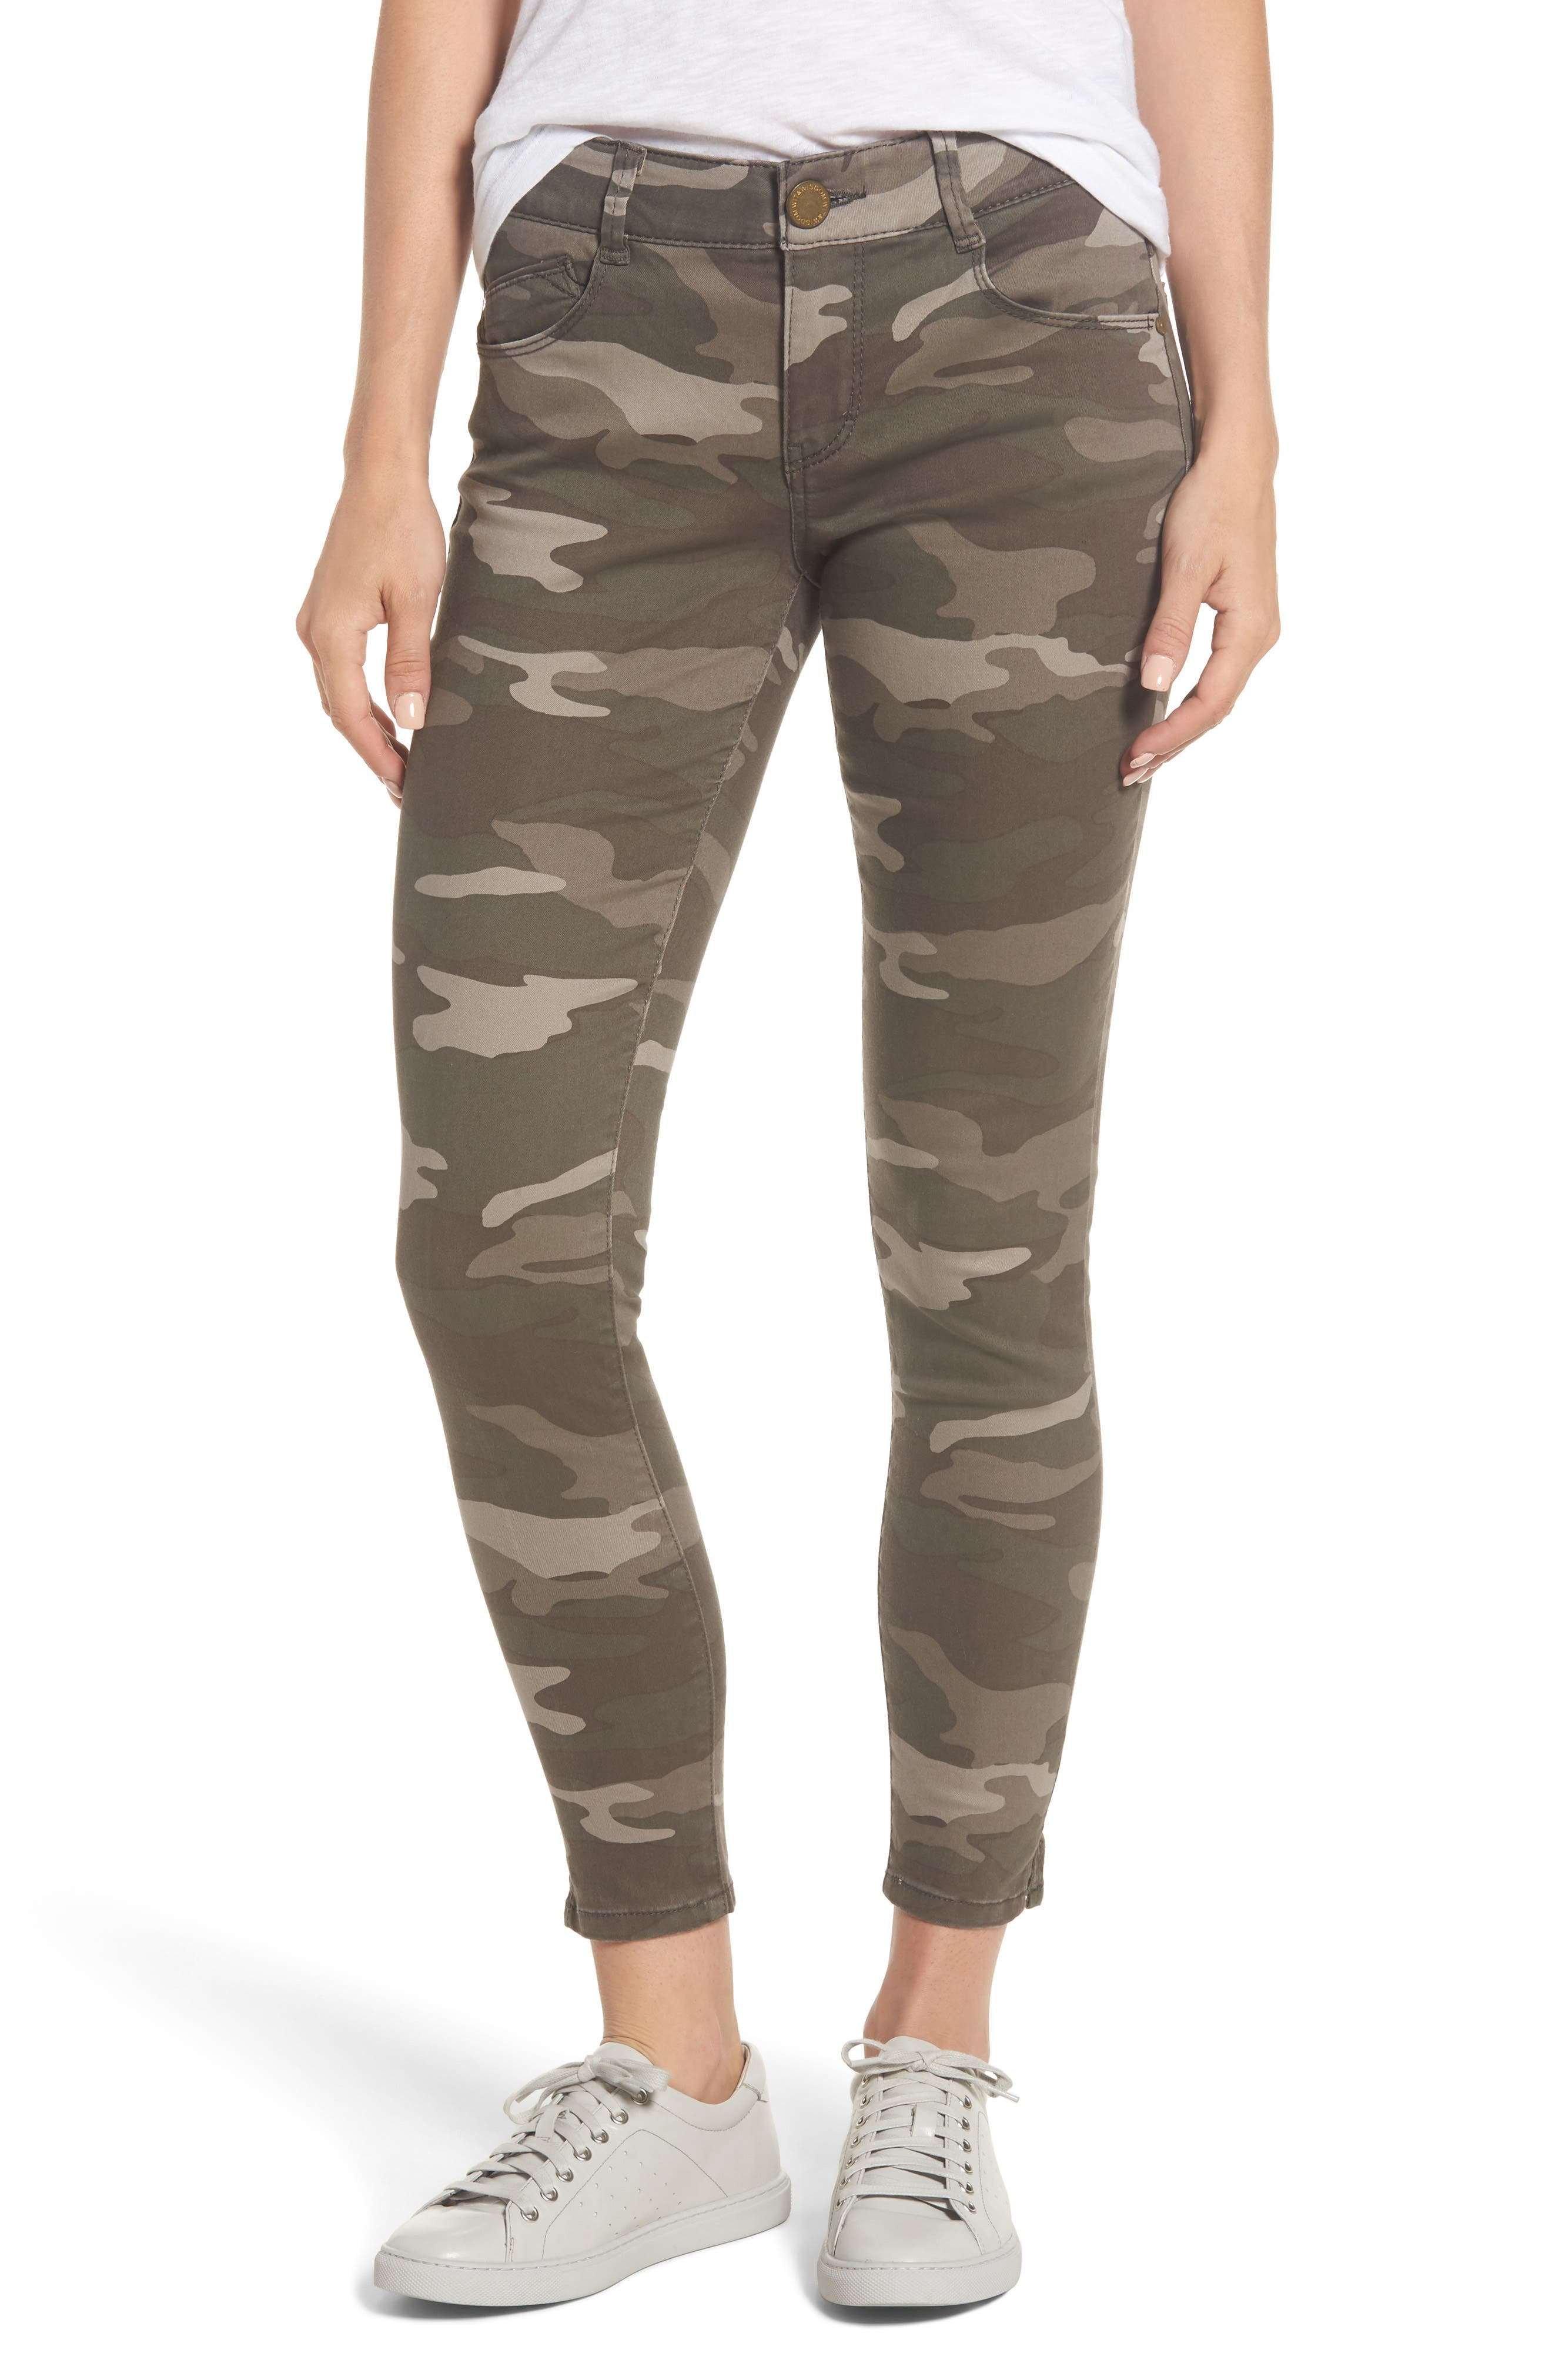 Wit & Wisdom Ab-solution Camo Stretch Ankle Skinny Jeans (Nordstrom Exclusive) (Regular & Petite)